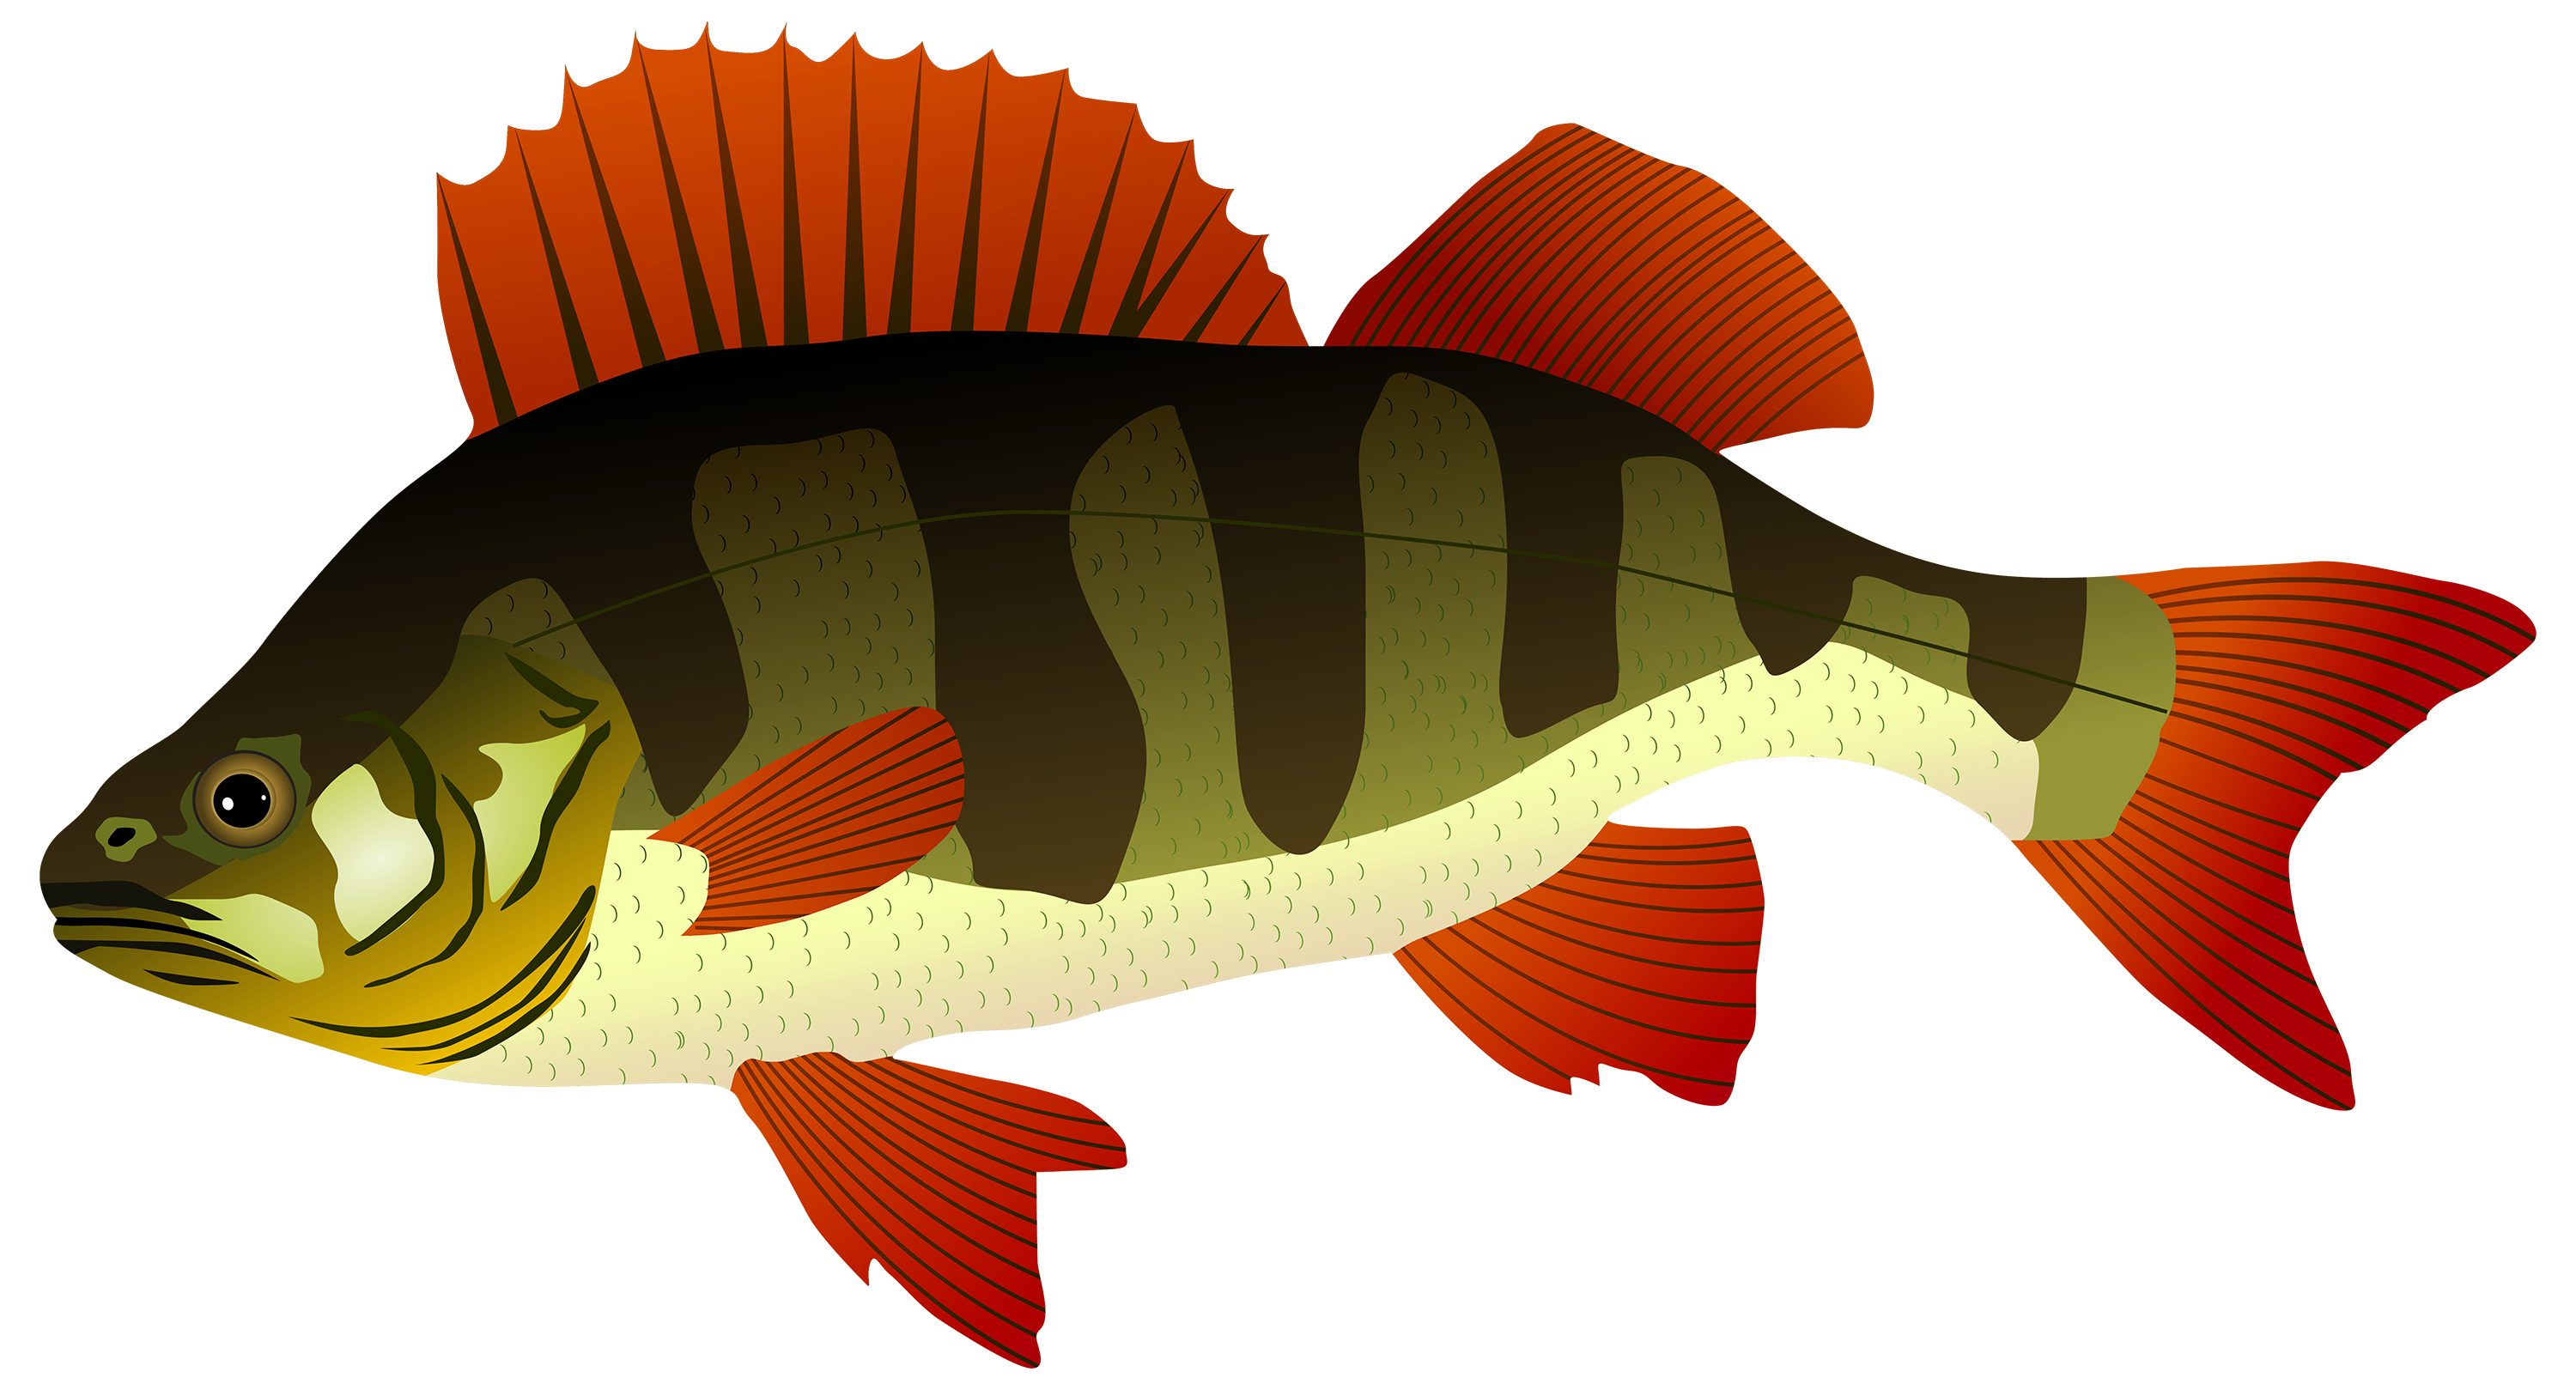 Perch fish png best. Shell clipart sea foods